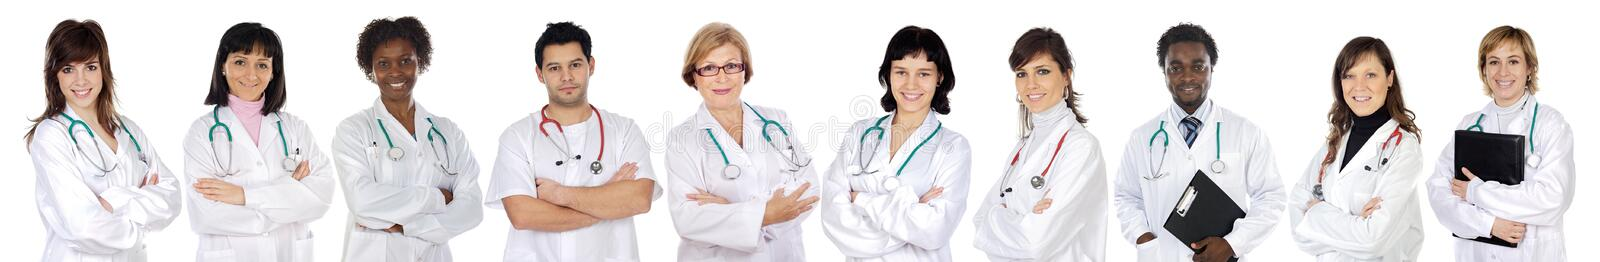 Medical team of woman stock photography